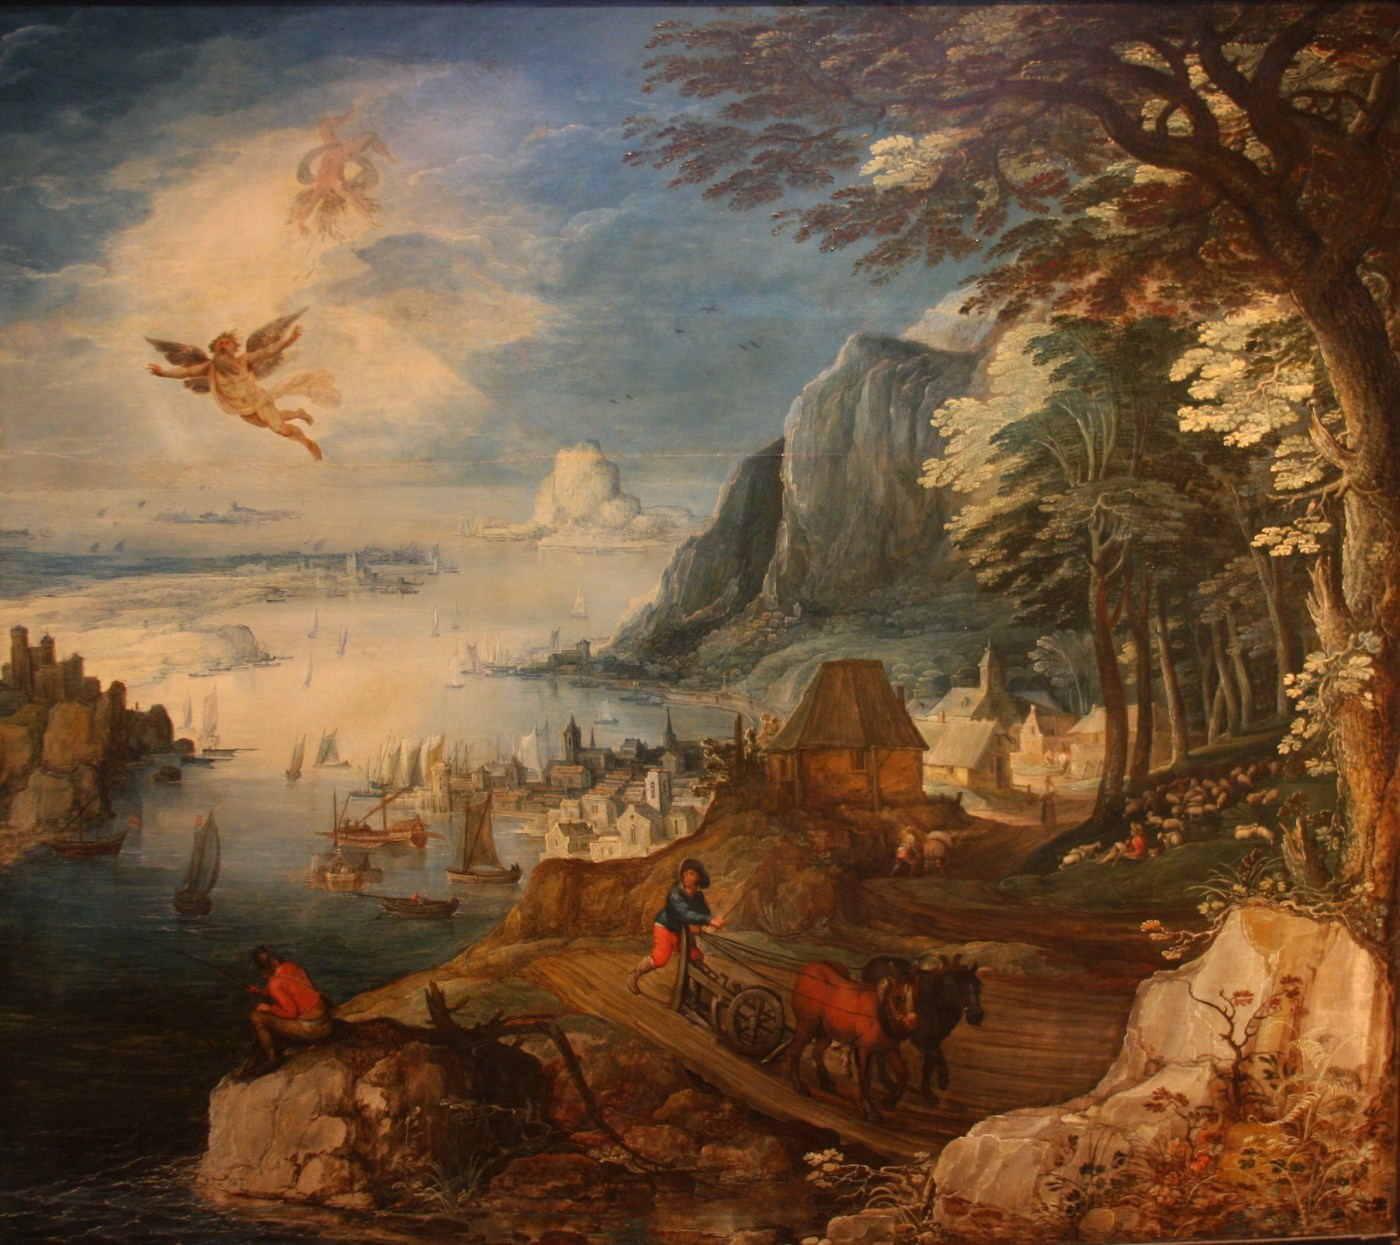 Joos de Momper's 'The Fall of Icarus'